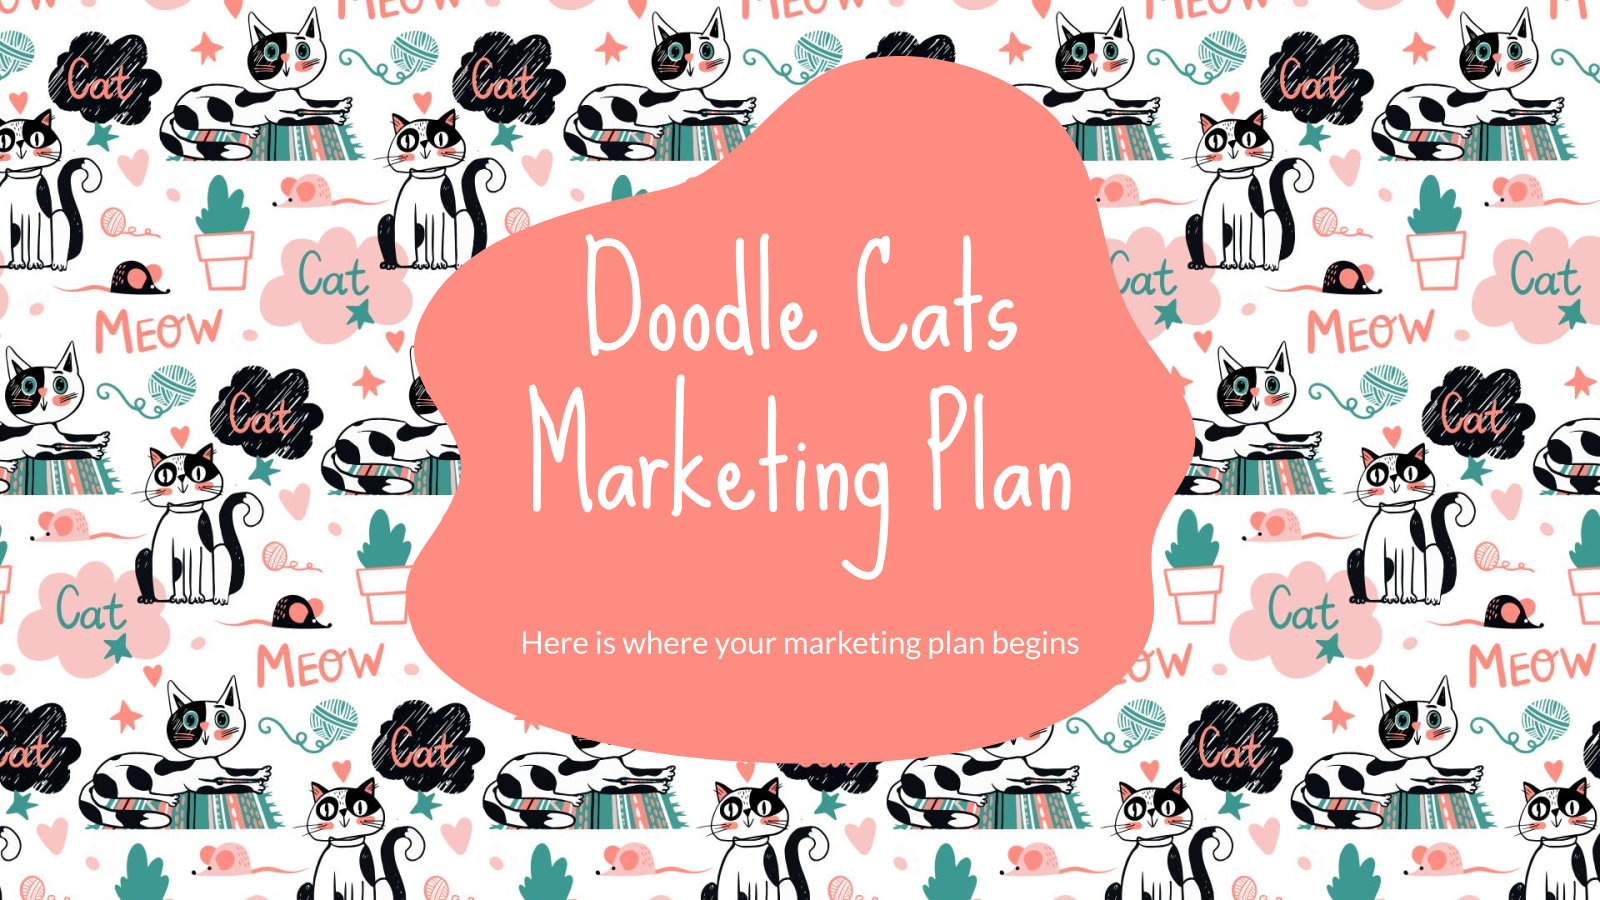 Doodle Cats Marketing Plan presentation template